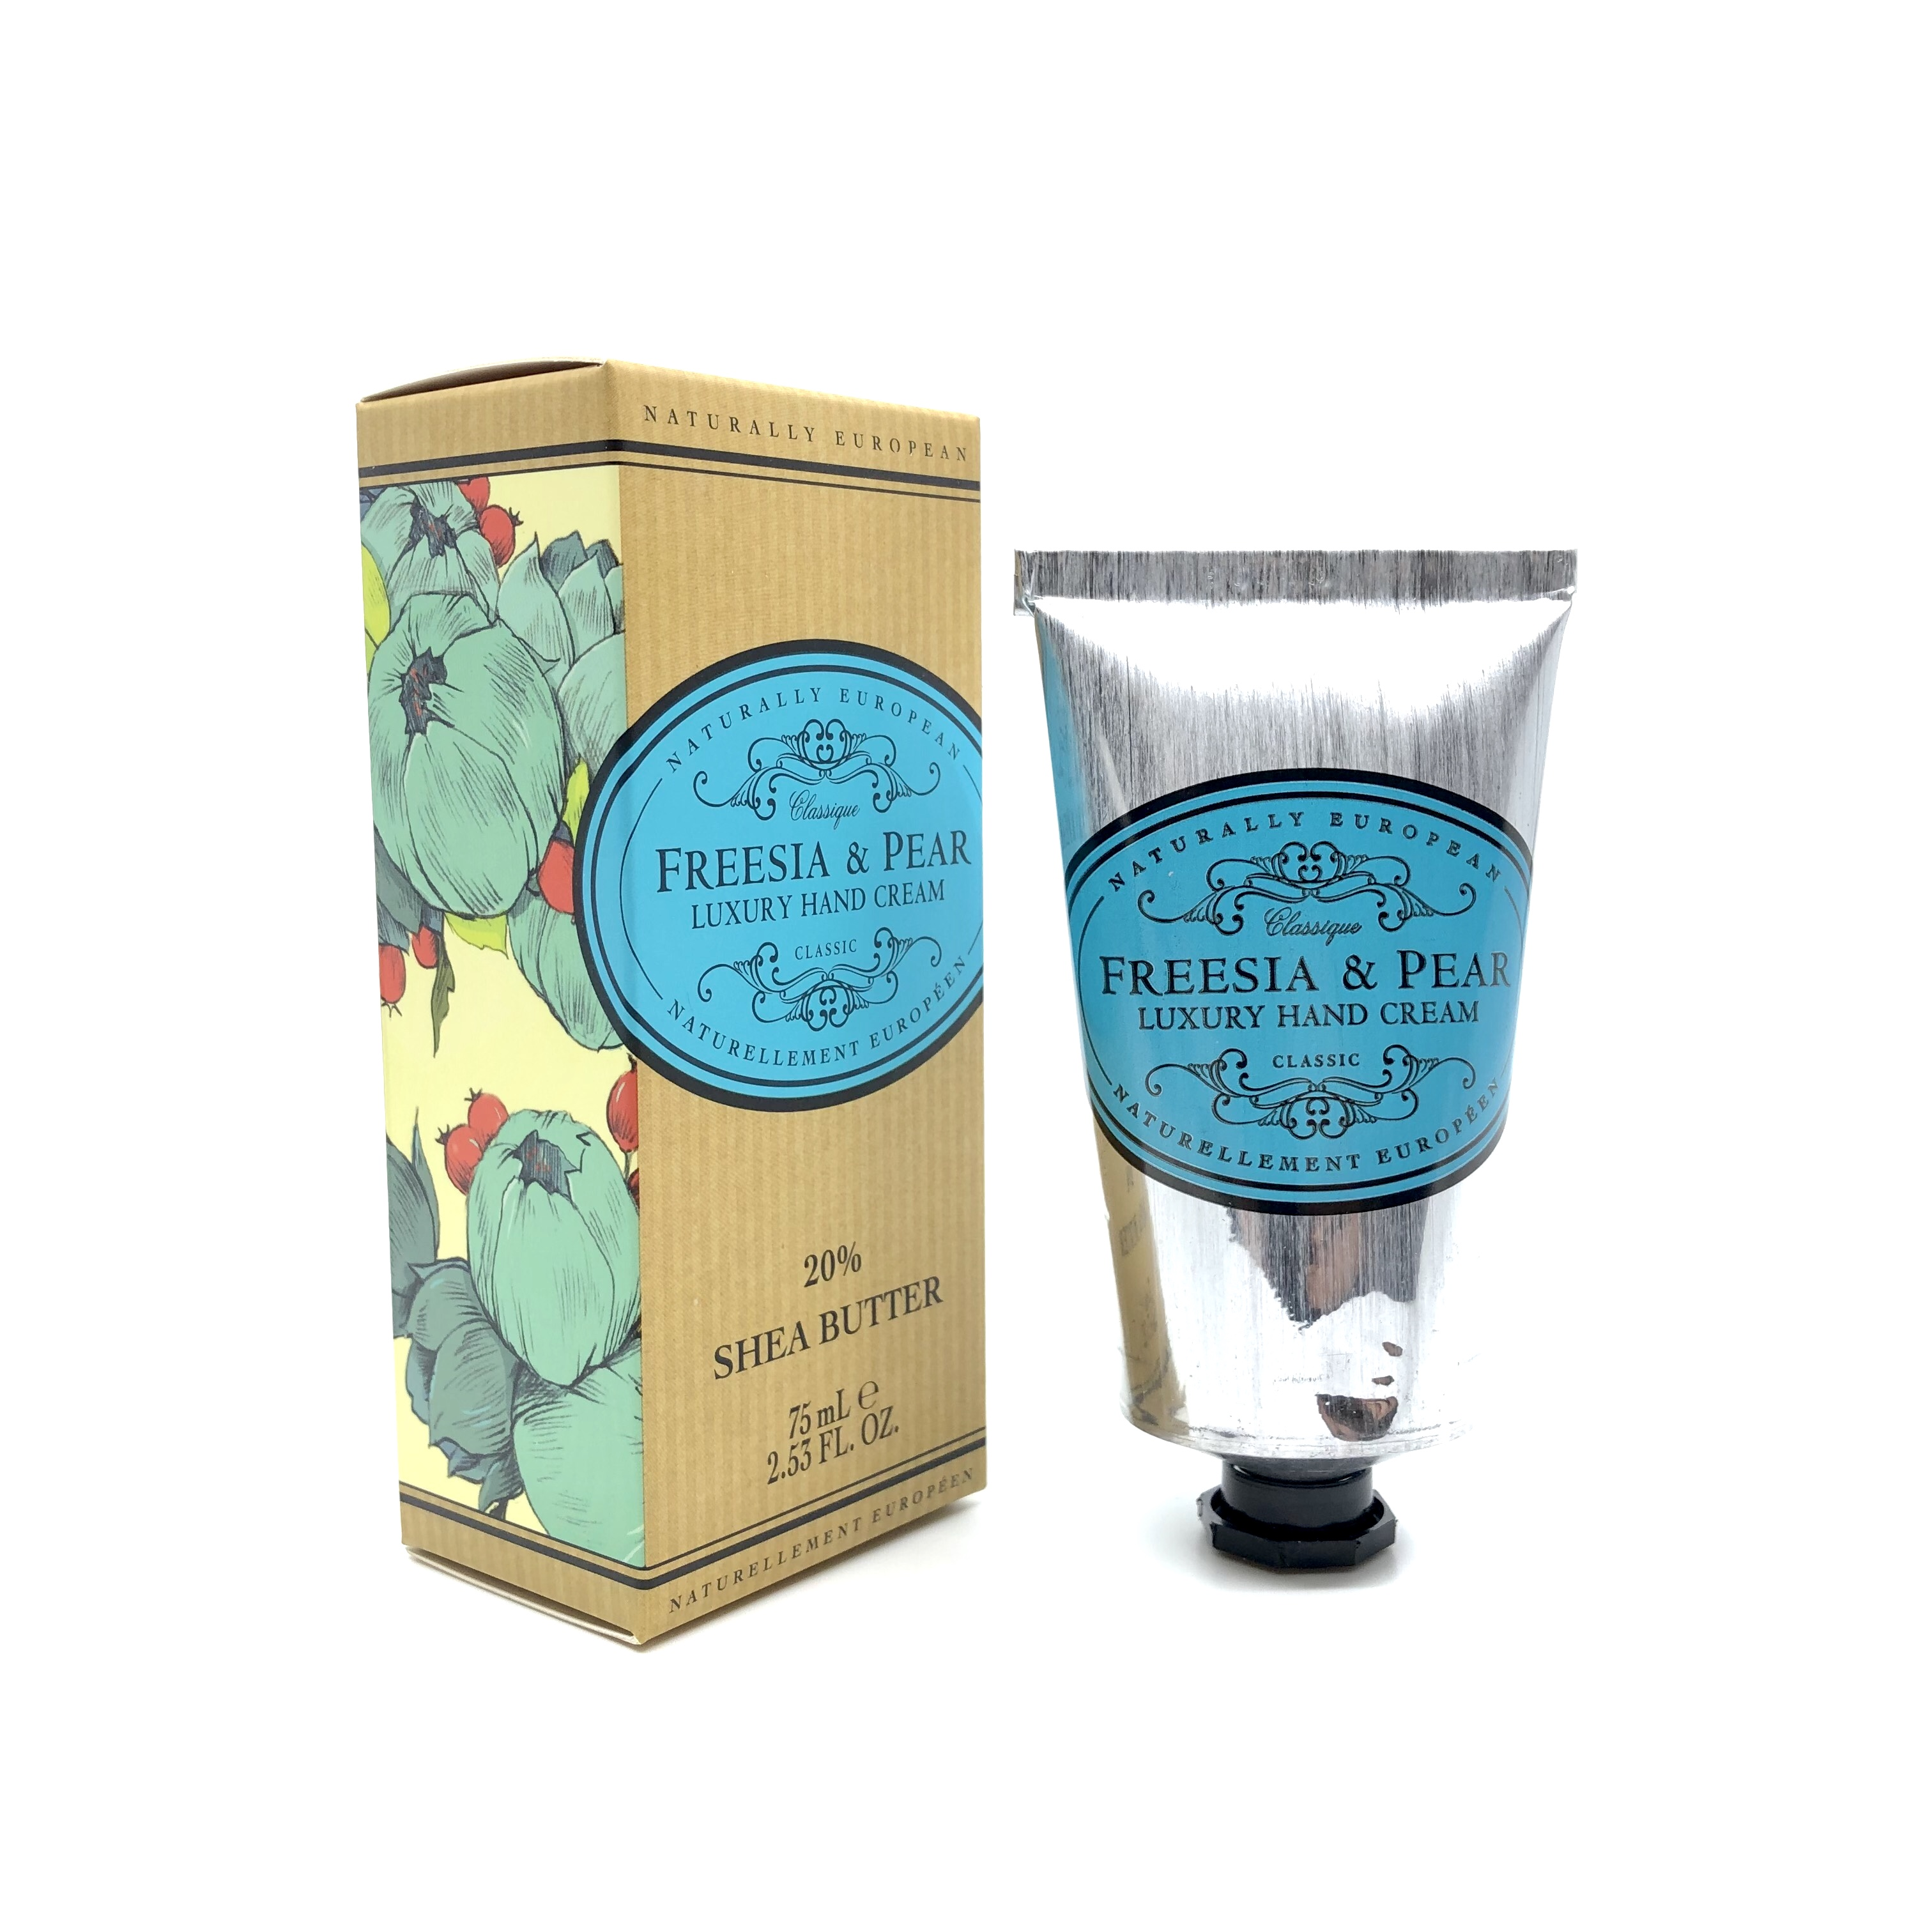 Naturally European Luxury Hand Cream Freesia Pear